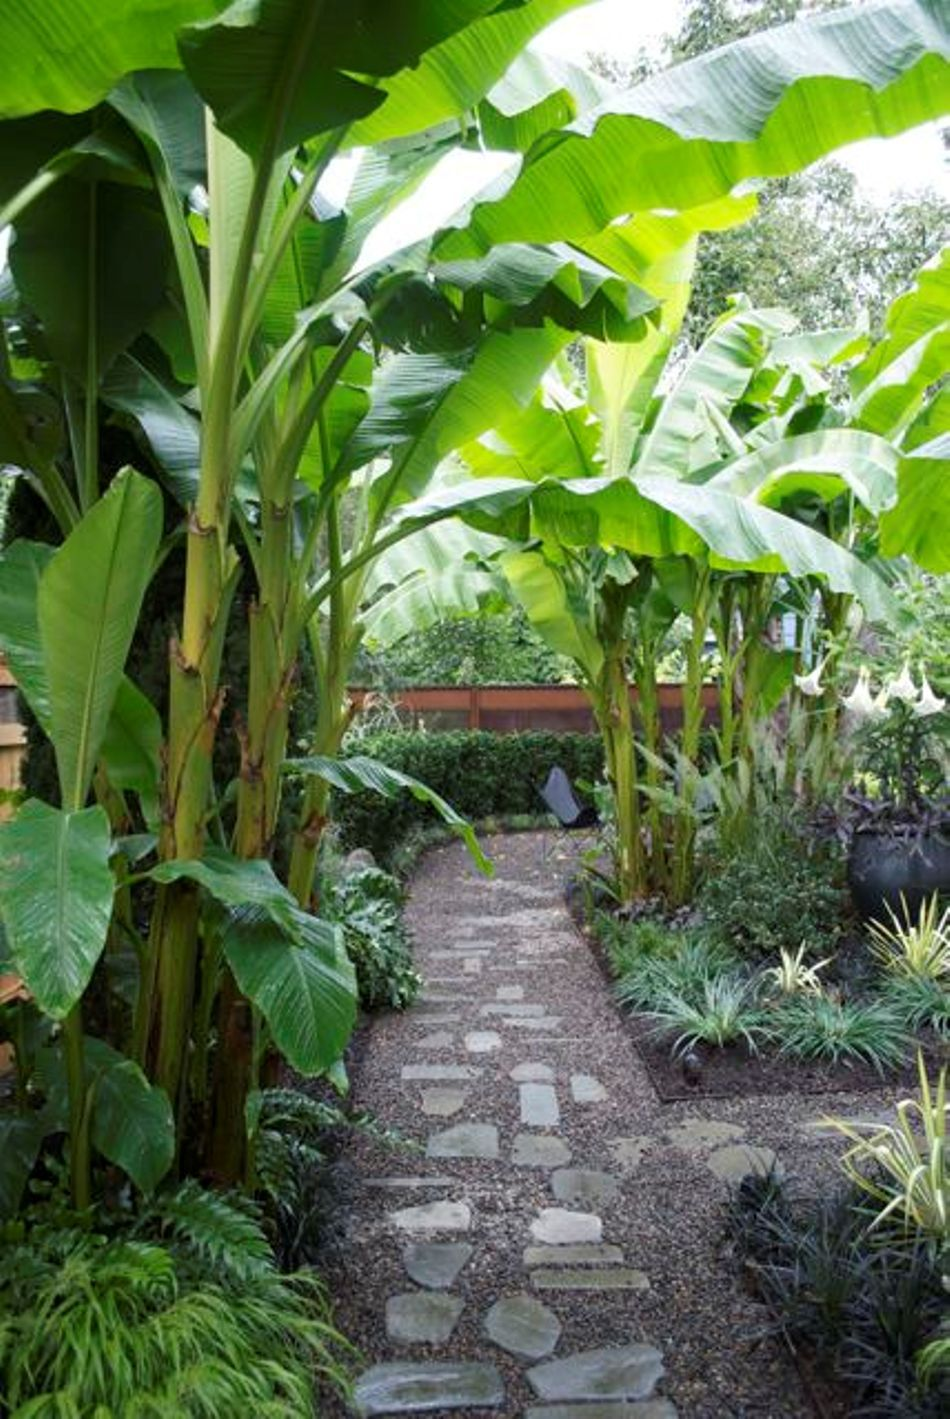 garden with pathway and banana